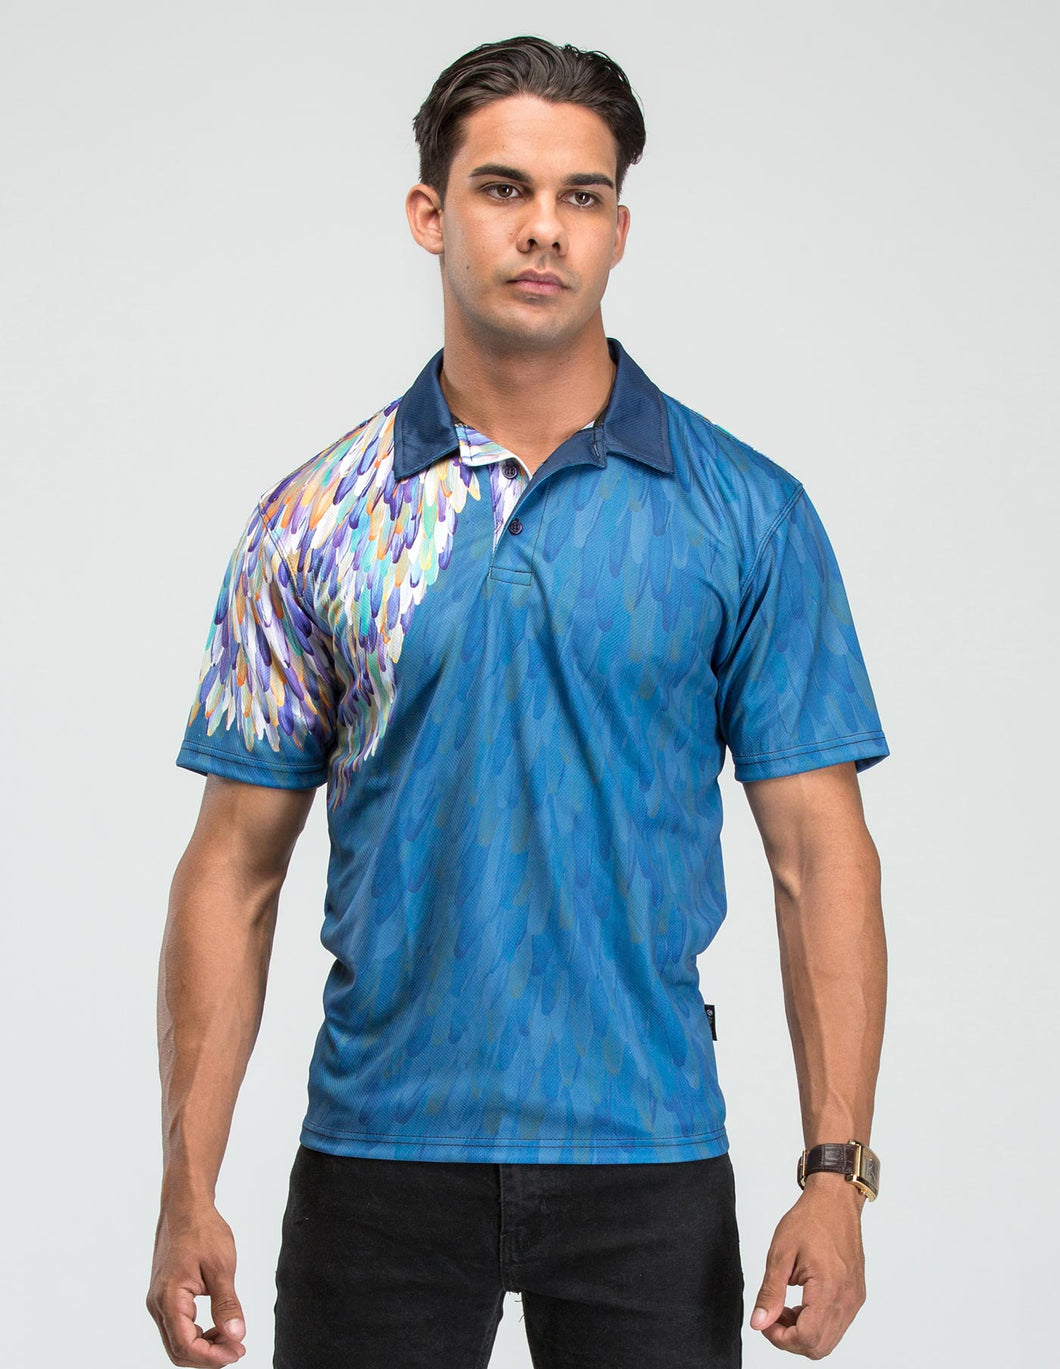 EMU DREAMING - BLUE Polo. Australian Aboriginal wearable art